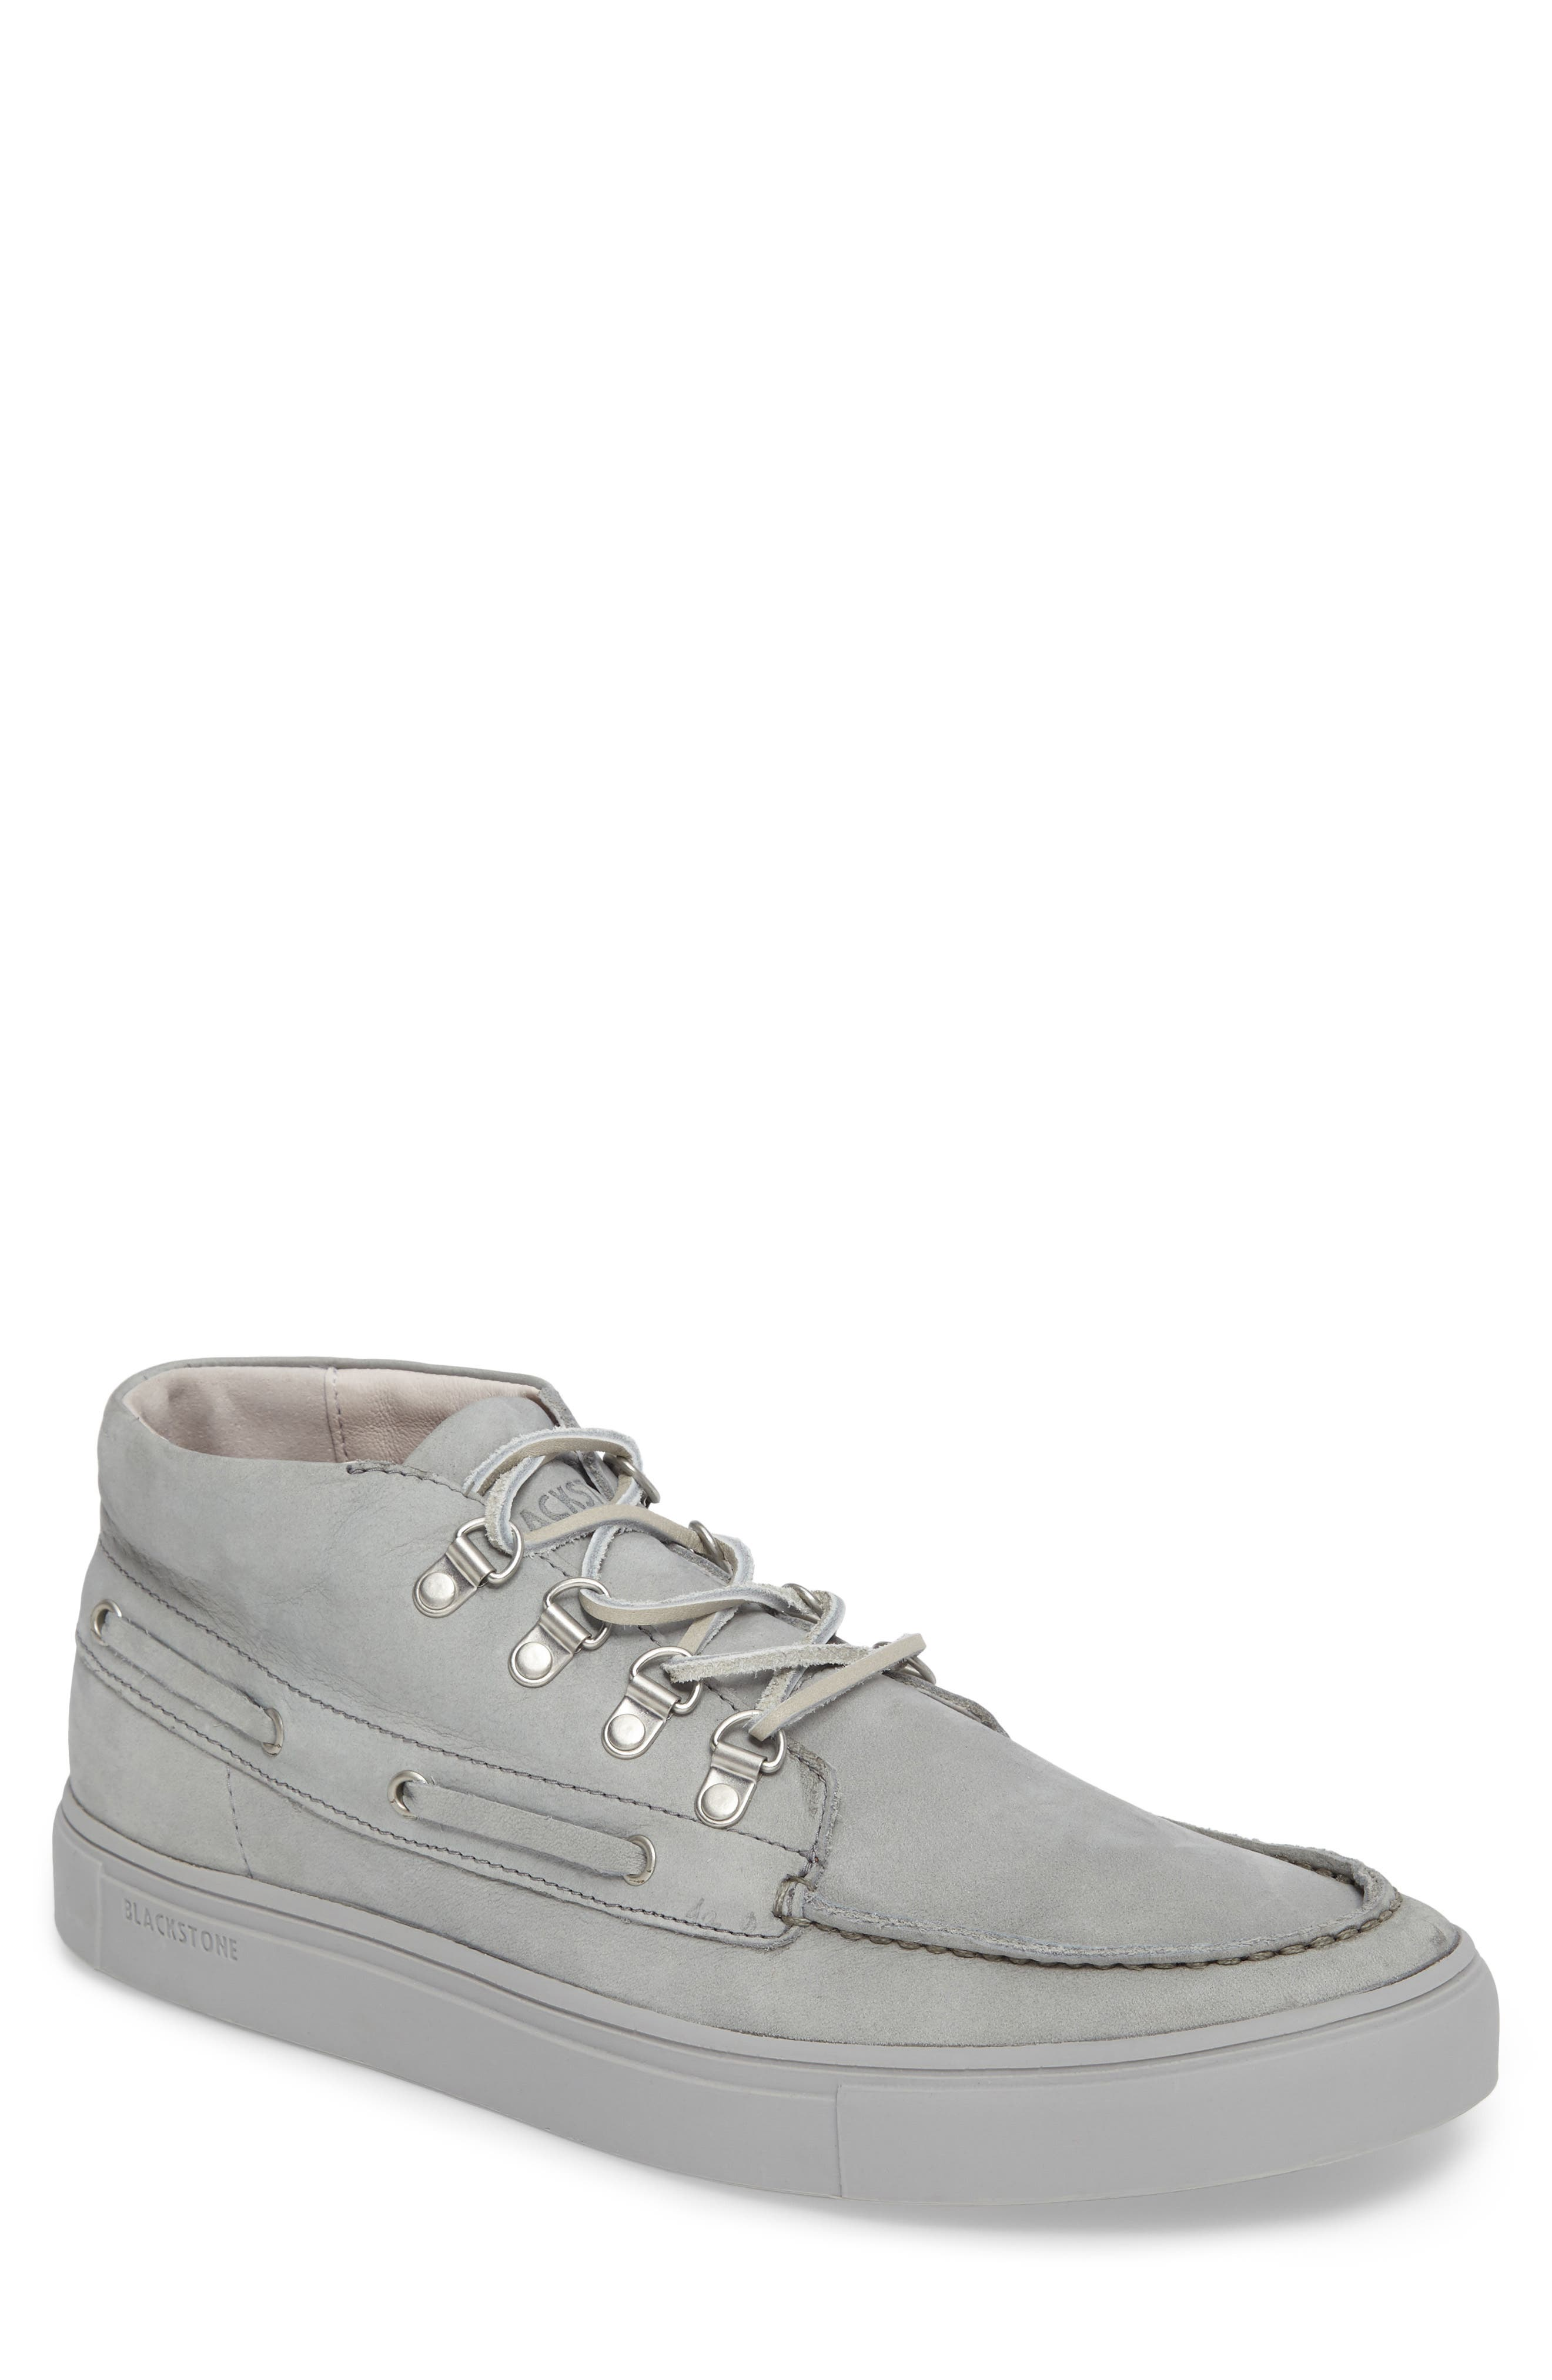 NM09 Mid Top Boat Sneaker,                         Main,                         color, Limestone Leather